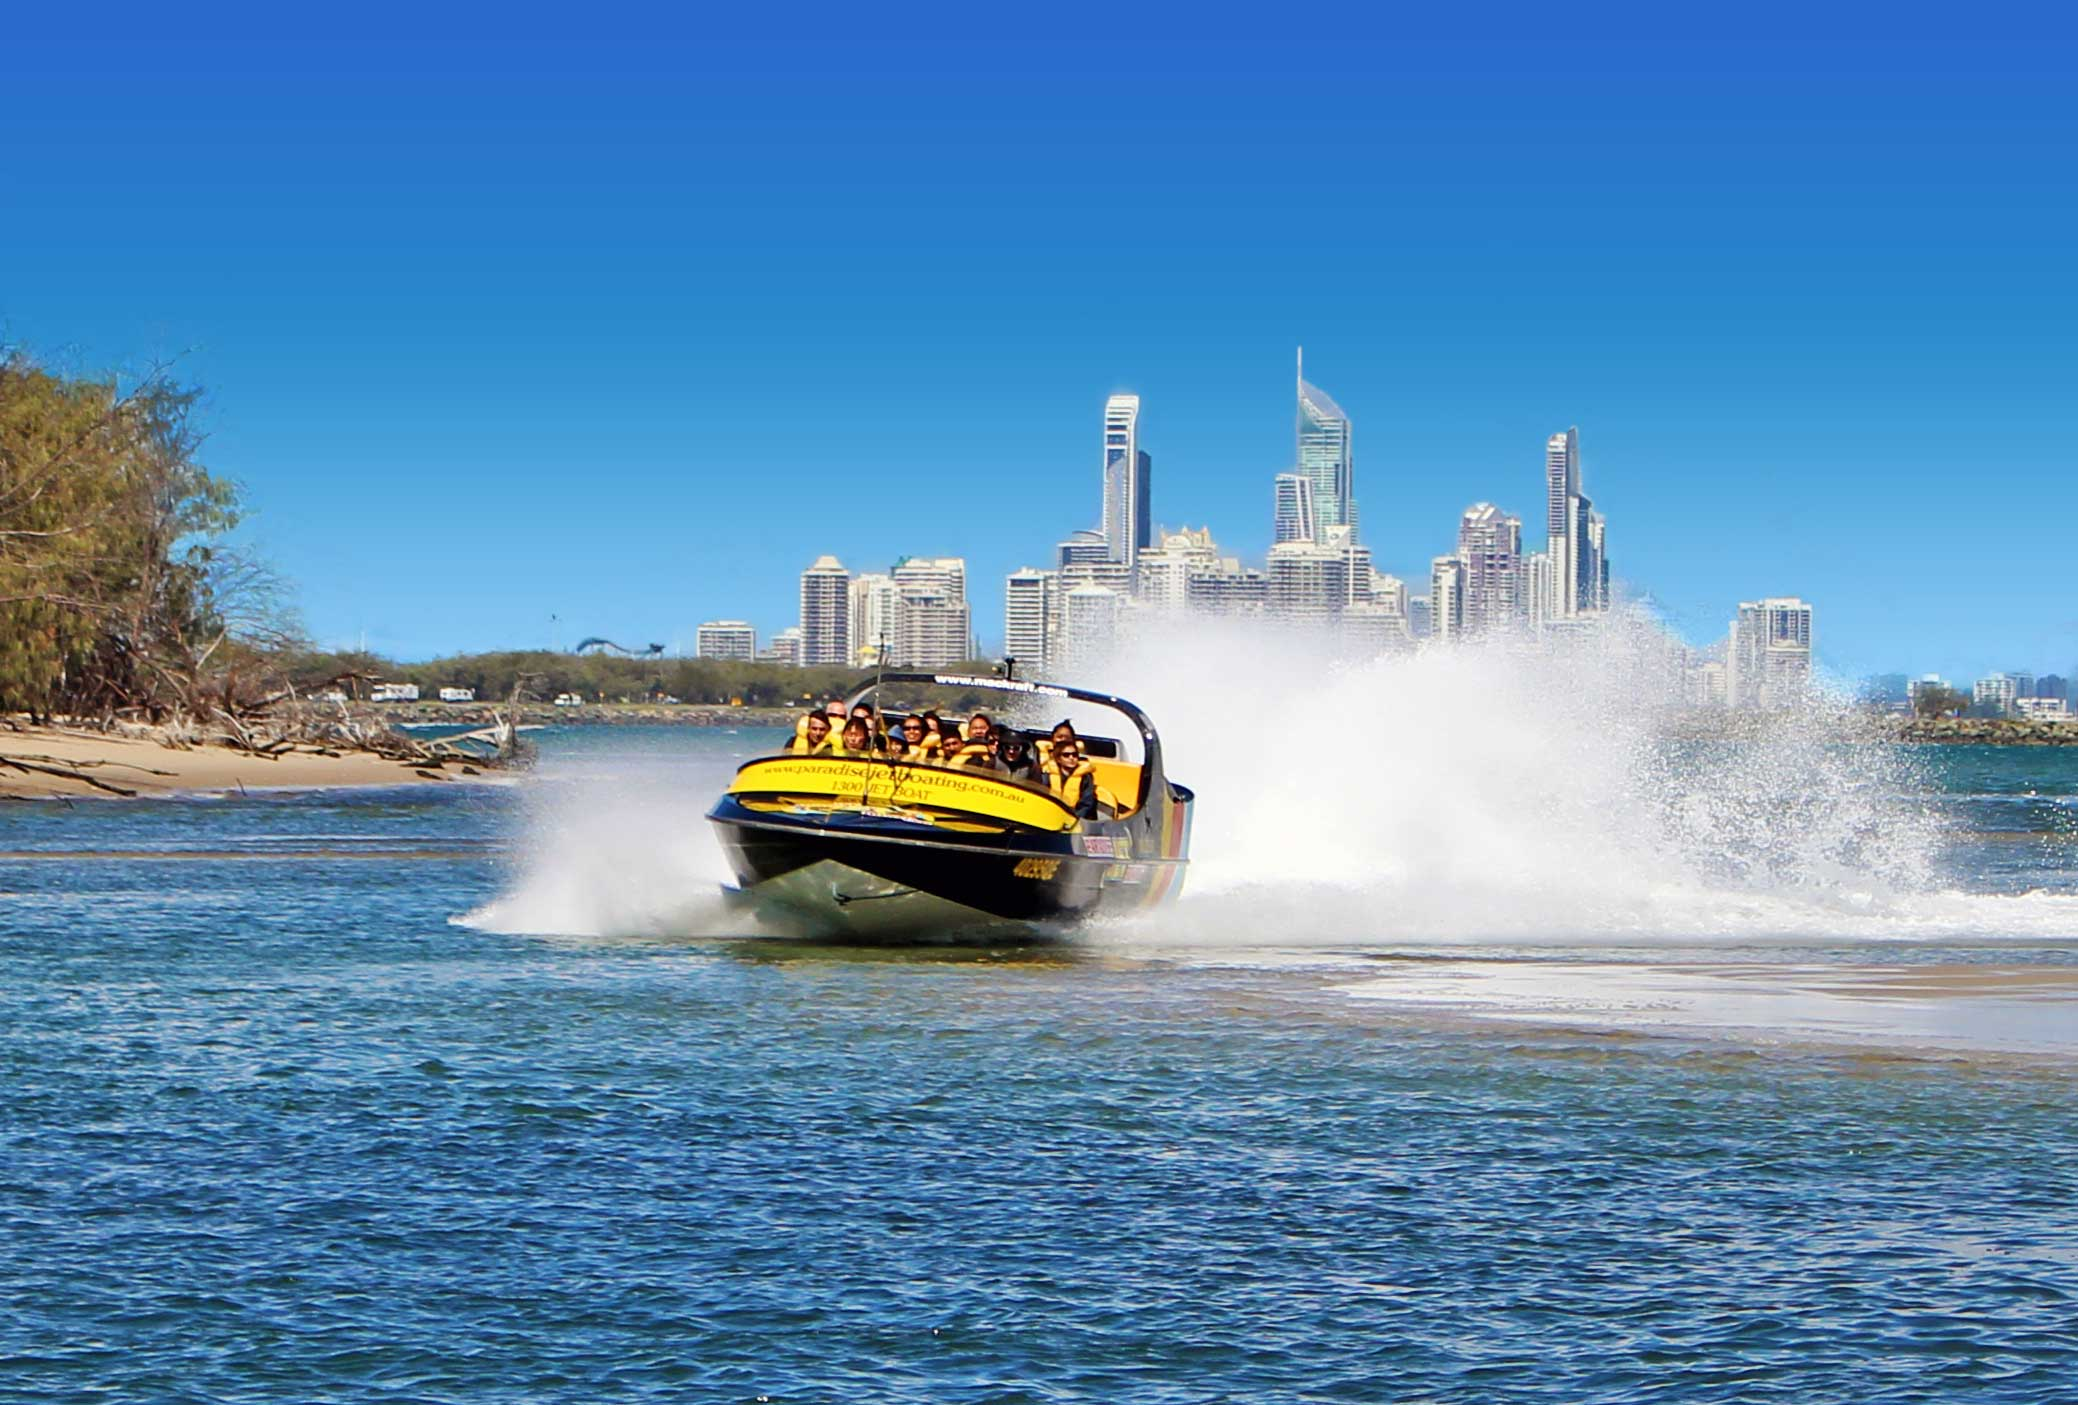 Jet boat on the water with surfers paradise in the background